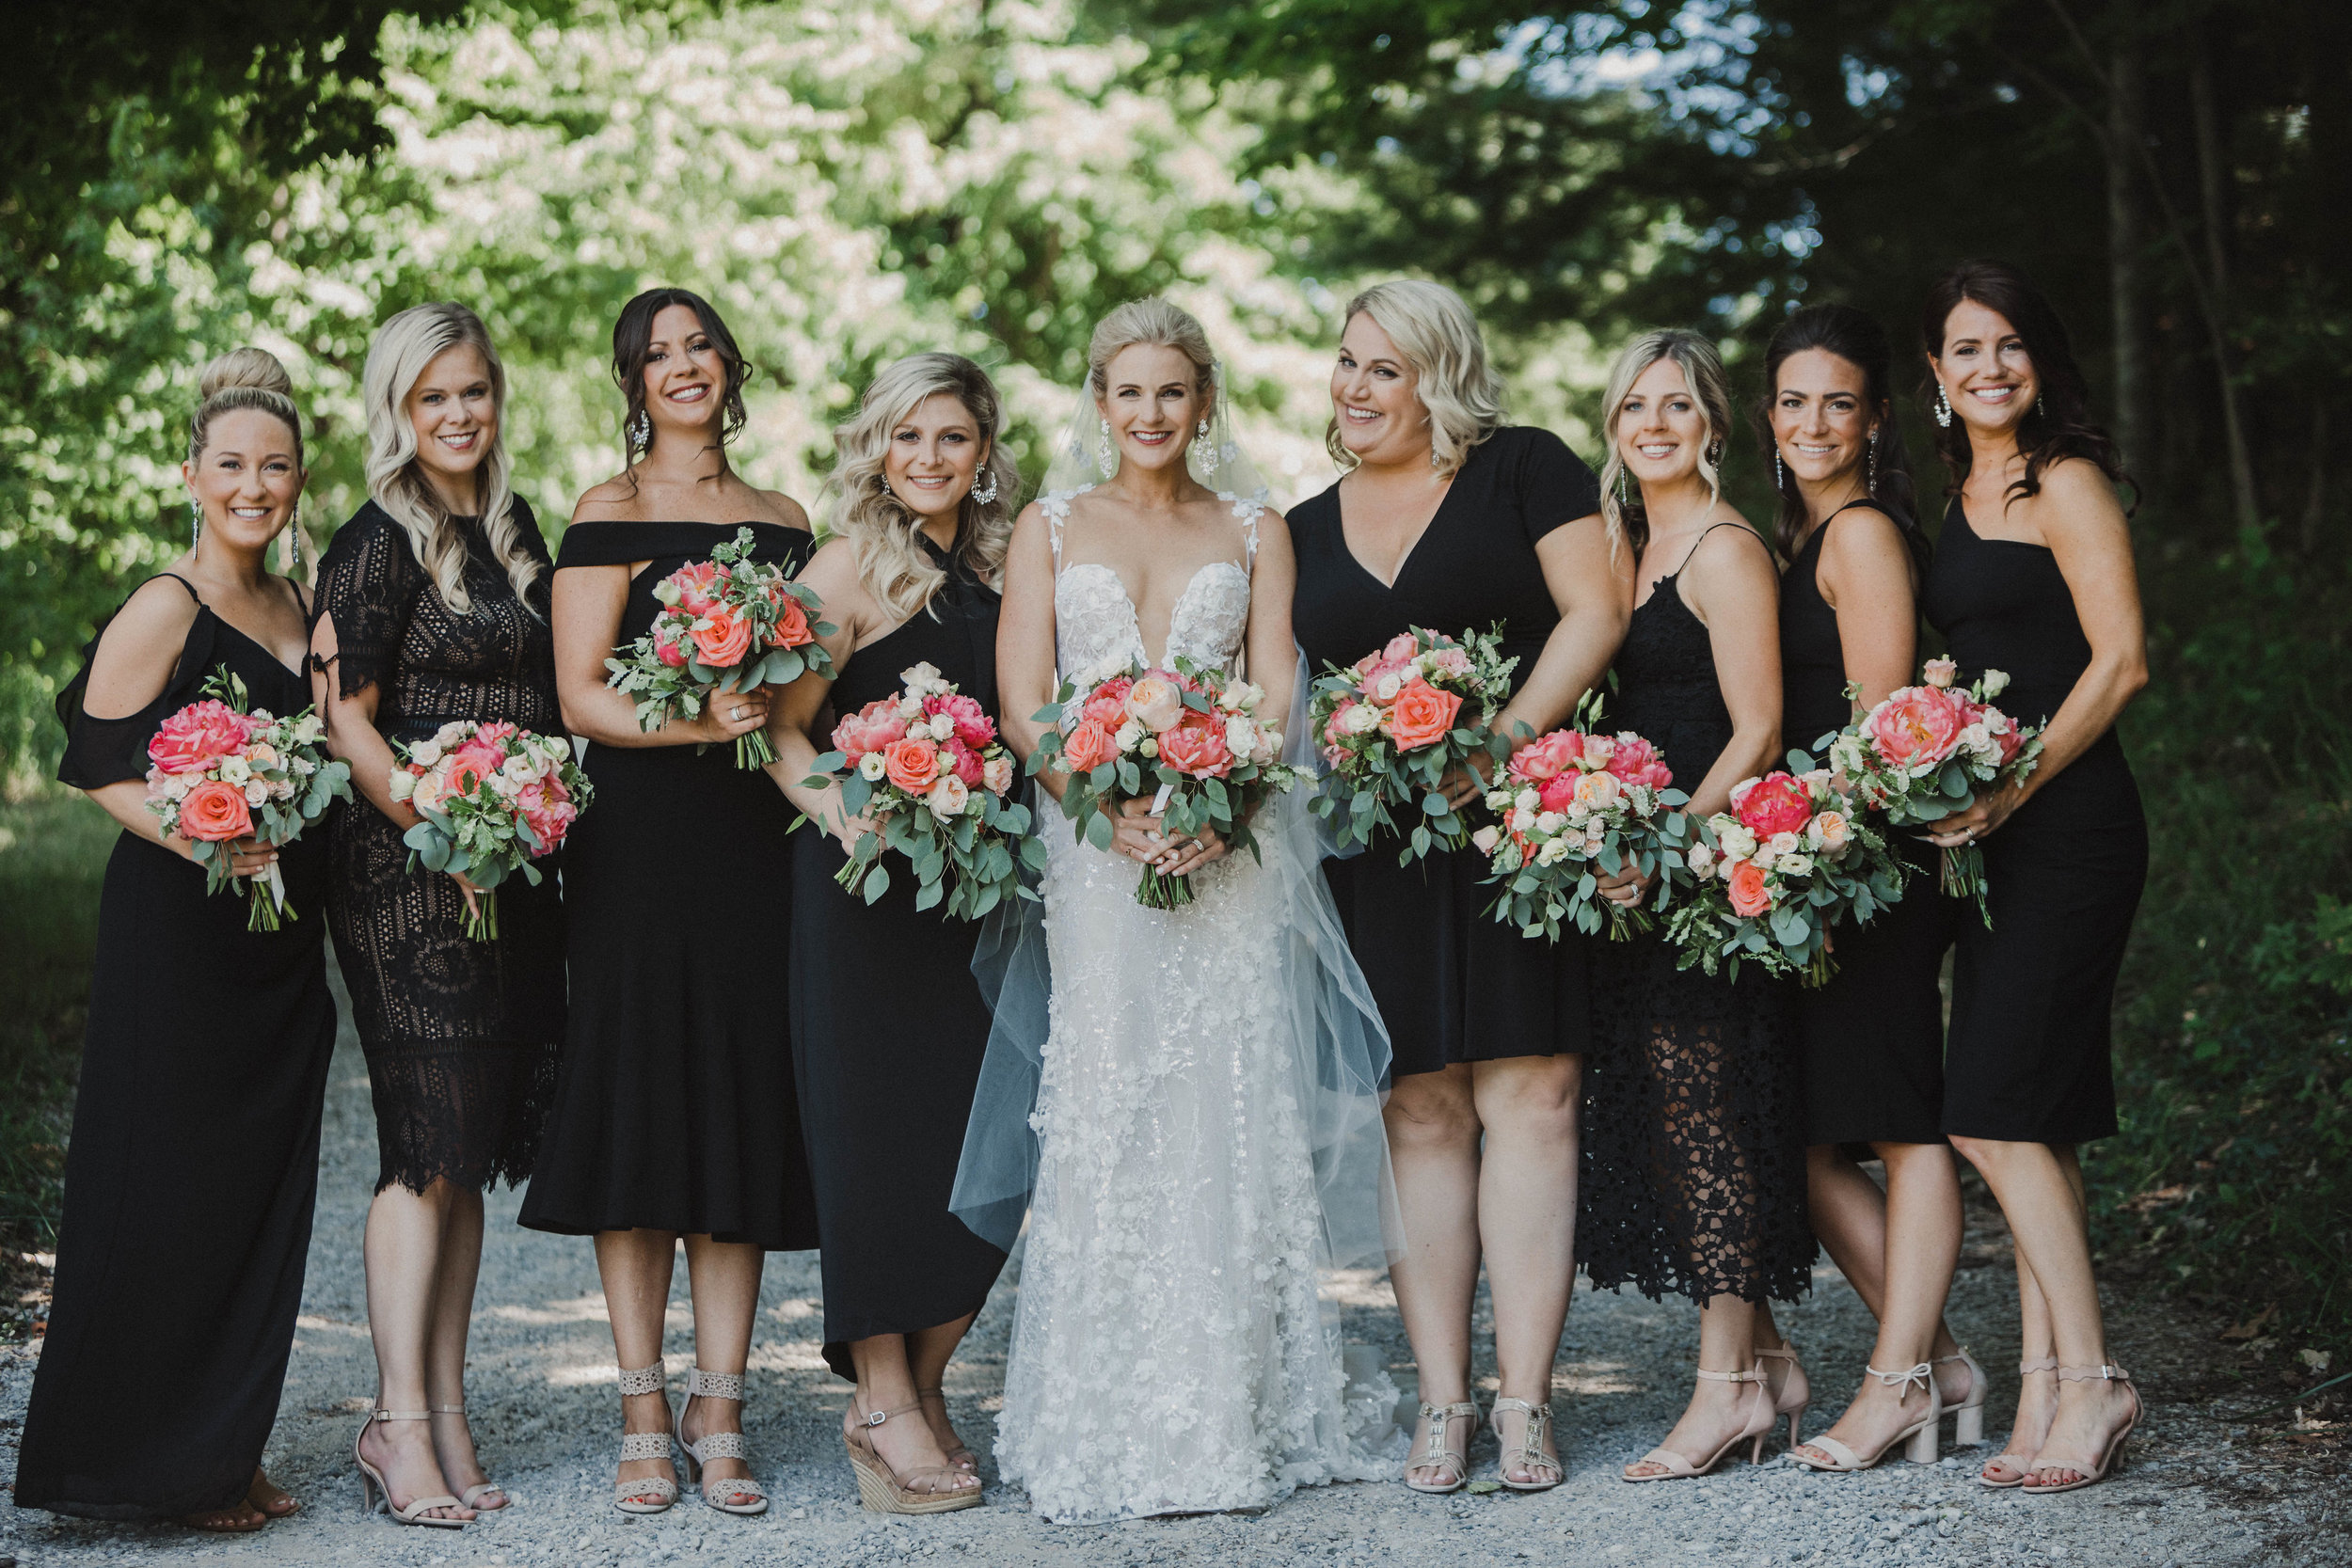 Just look at those bouquets filled with Coral Peonies!